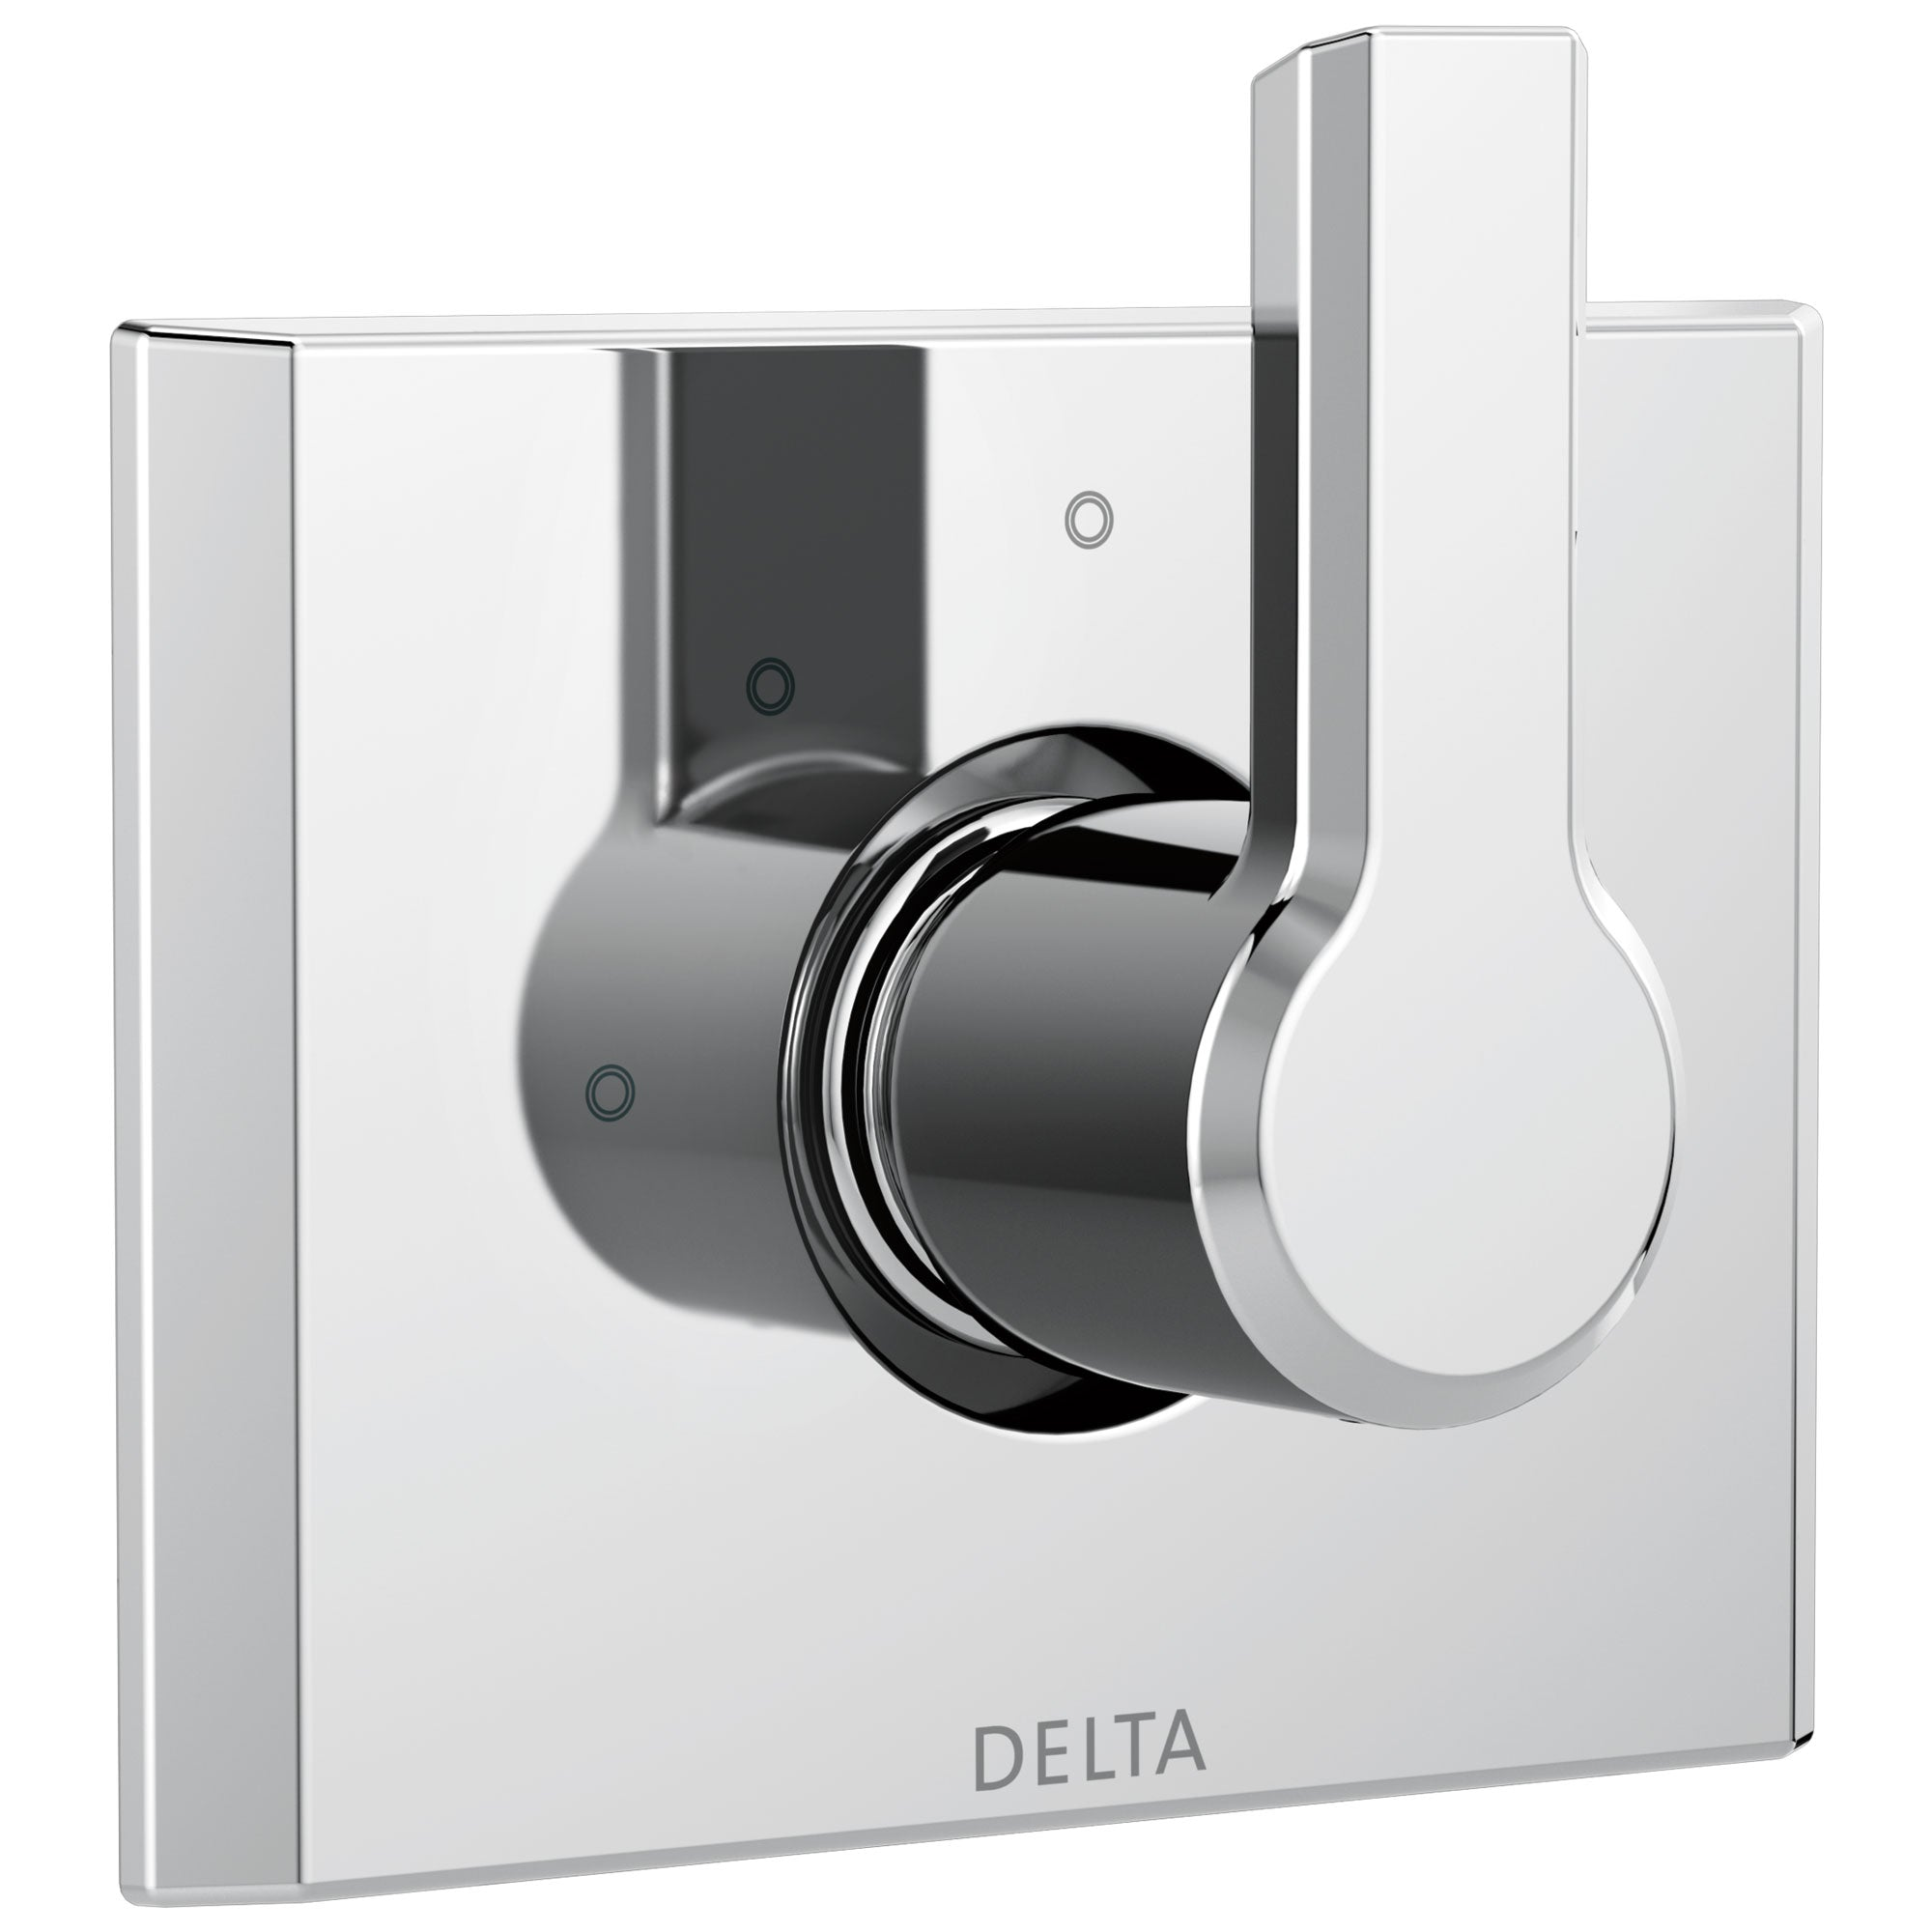 Delta Pivotal Chrome Finish 3-Setting 2-Port Shower Diverter Trim Kit (Requires Valve) DT11899